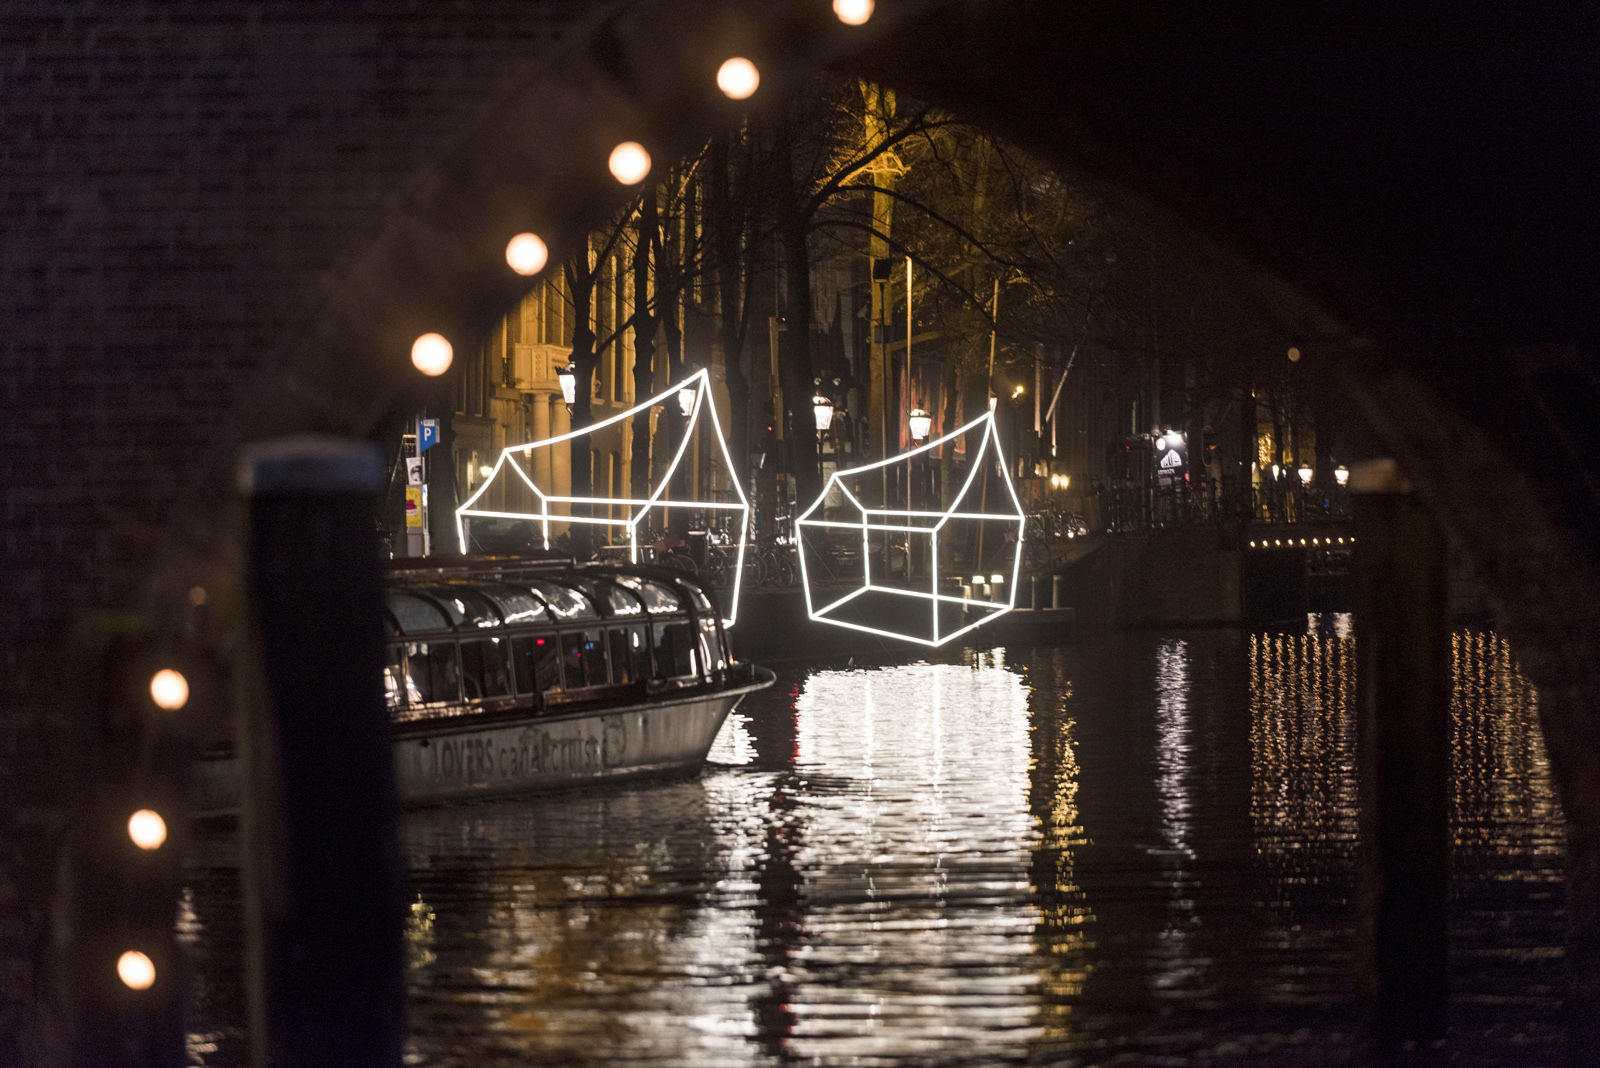 A City Made By People Amsterdam Light Festival 2016 Aron Suveg